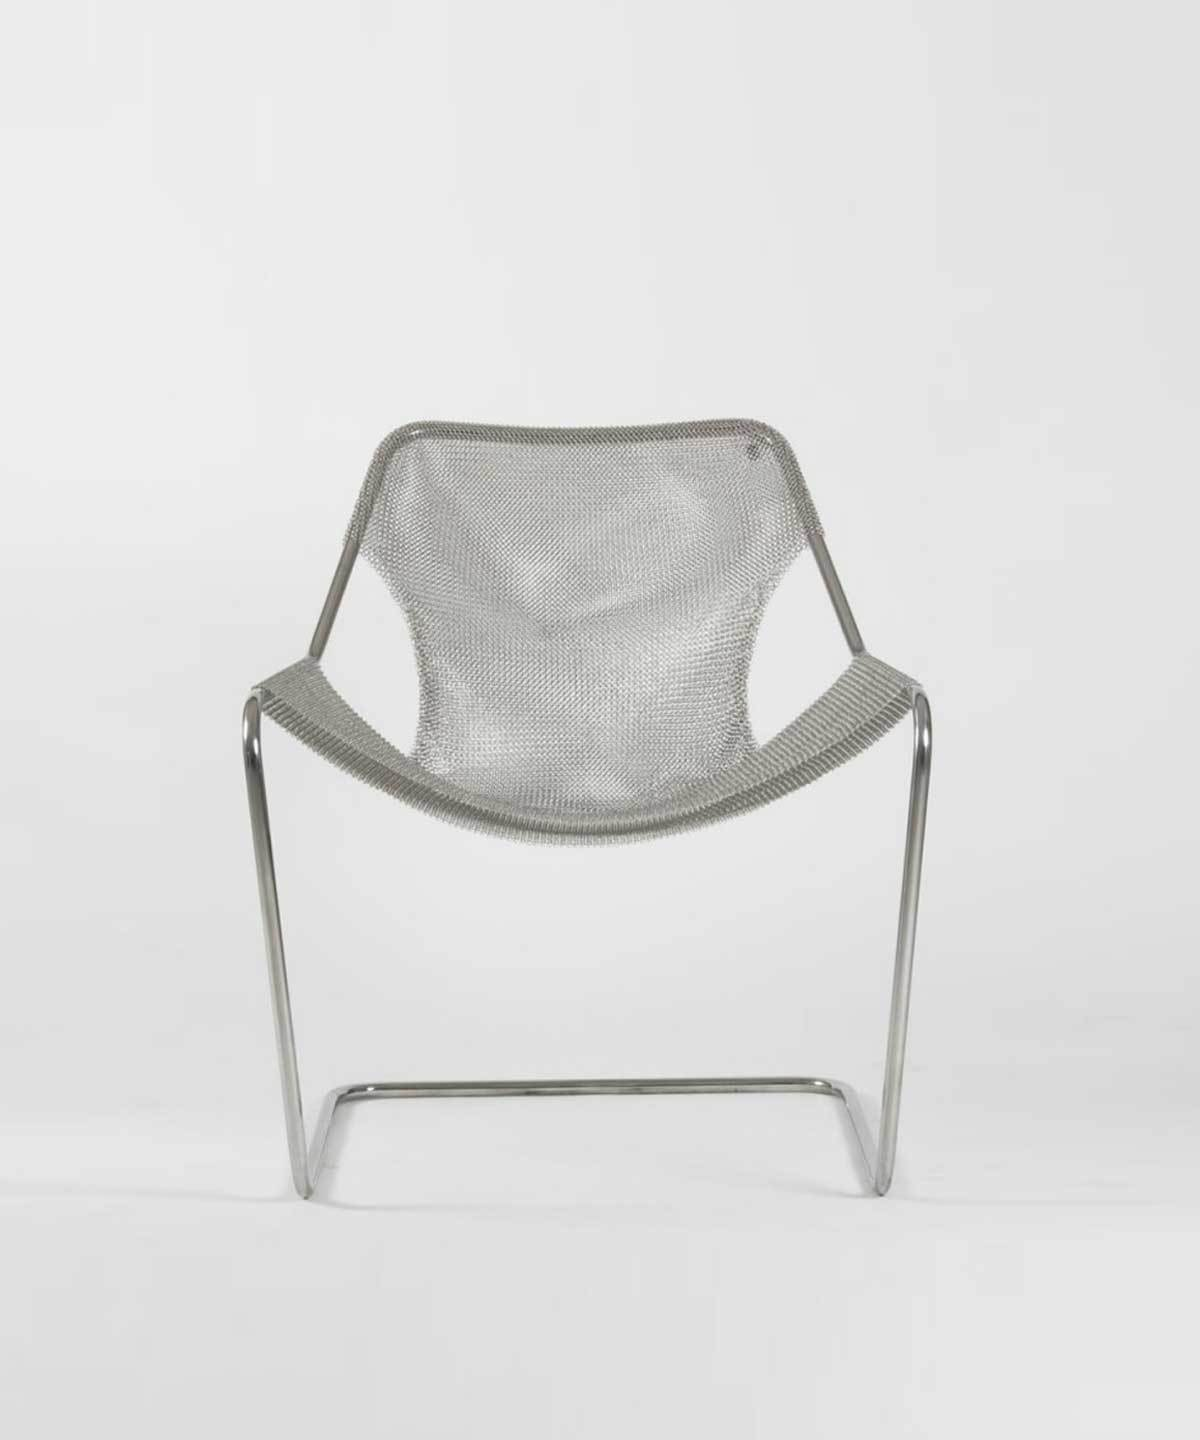 Paulistano Arm Chair in Mesh by Objekto | TRNK